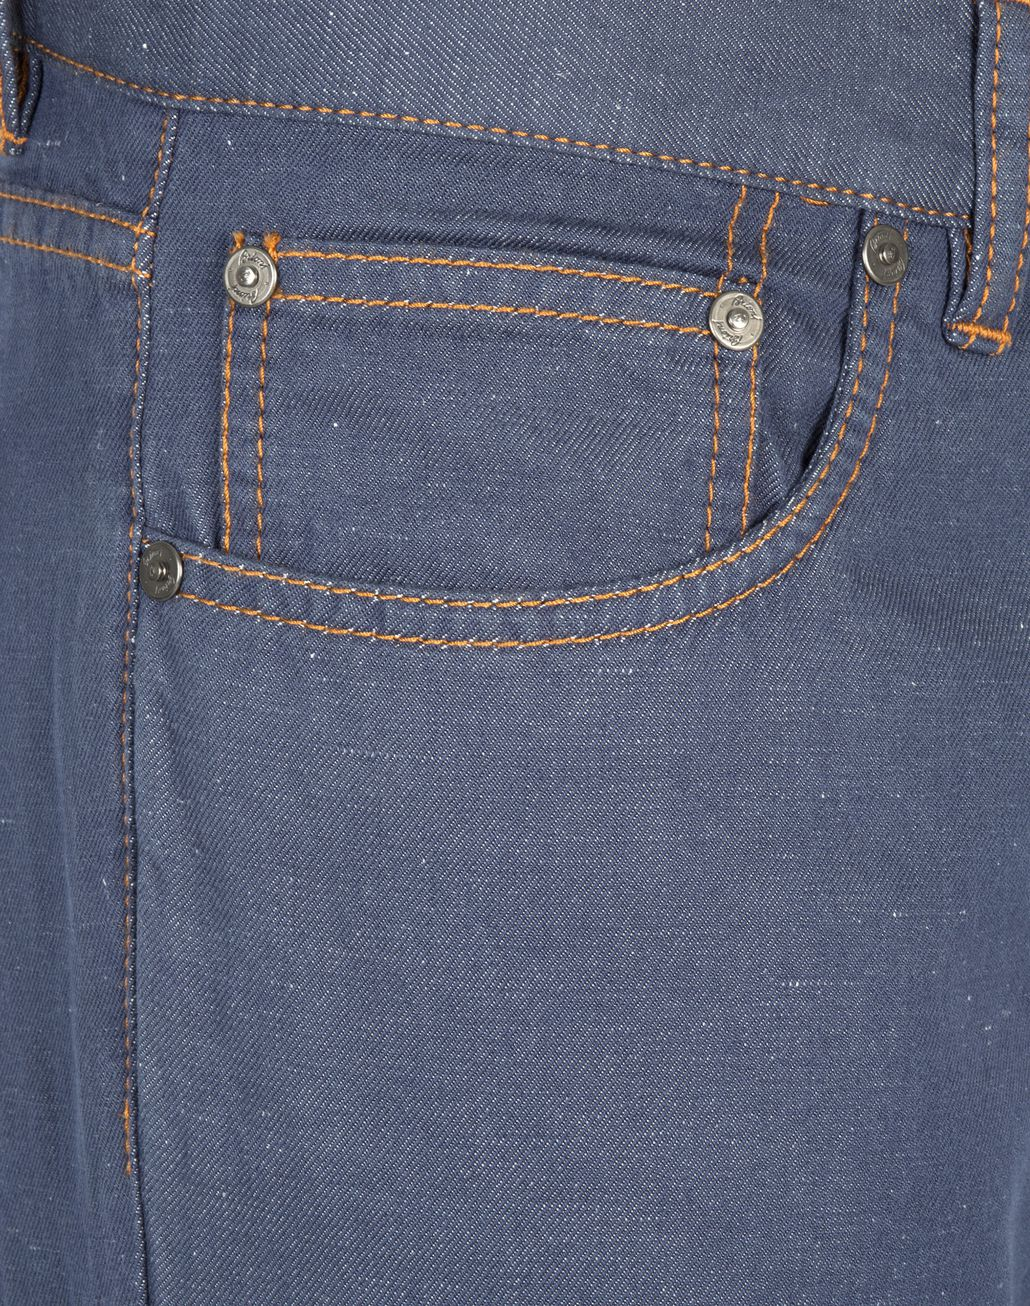 BRIONI Bluette Slim Fit Cotton and Linen Aneto Jeans  Denim [*** pickupInStoreShippingNotGuaranteed_info ***] e